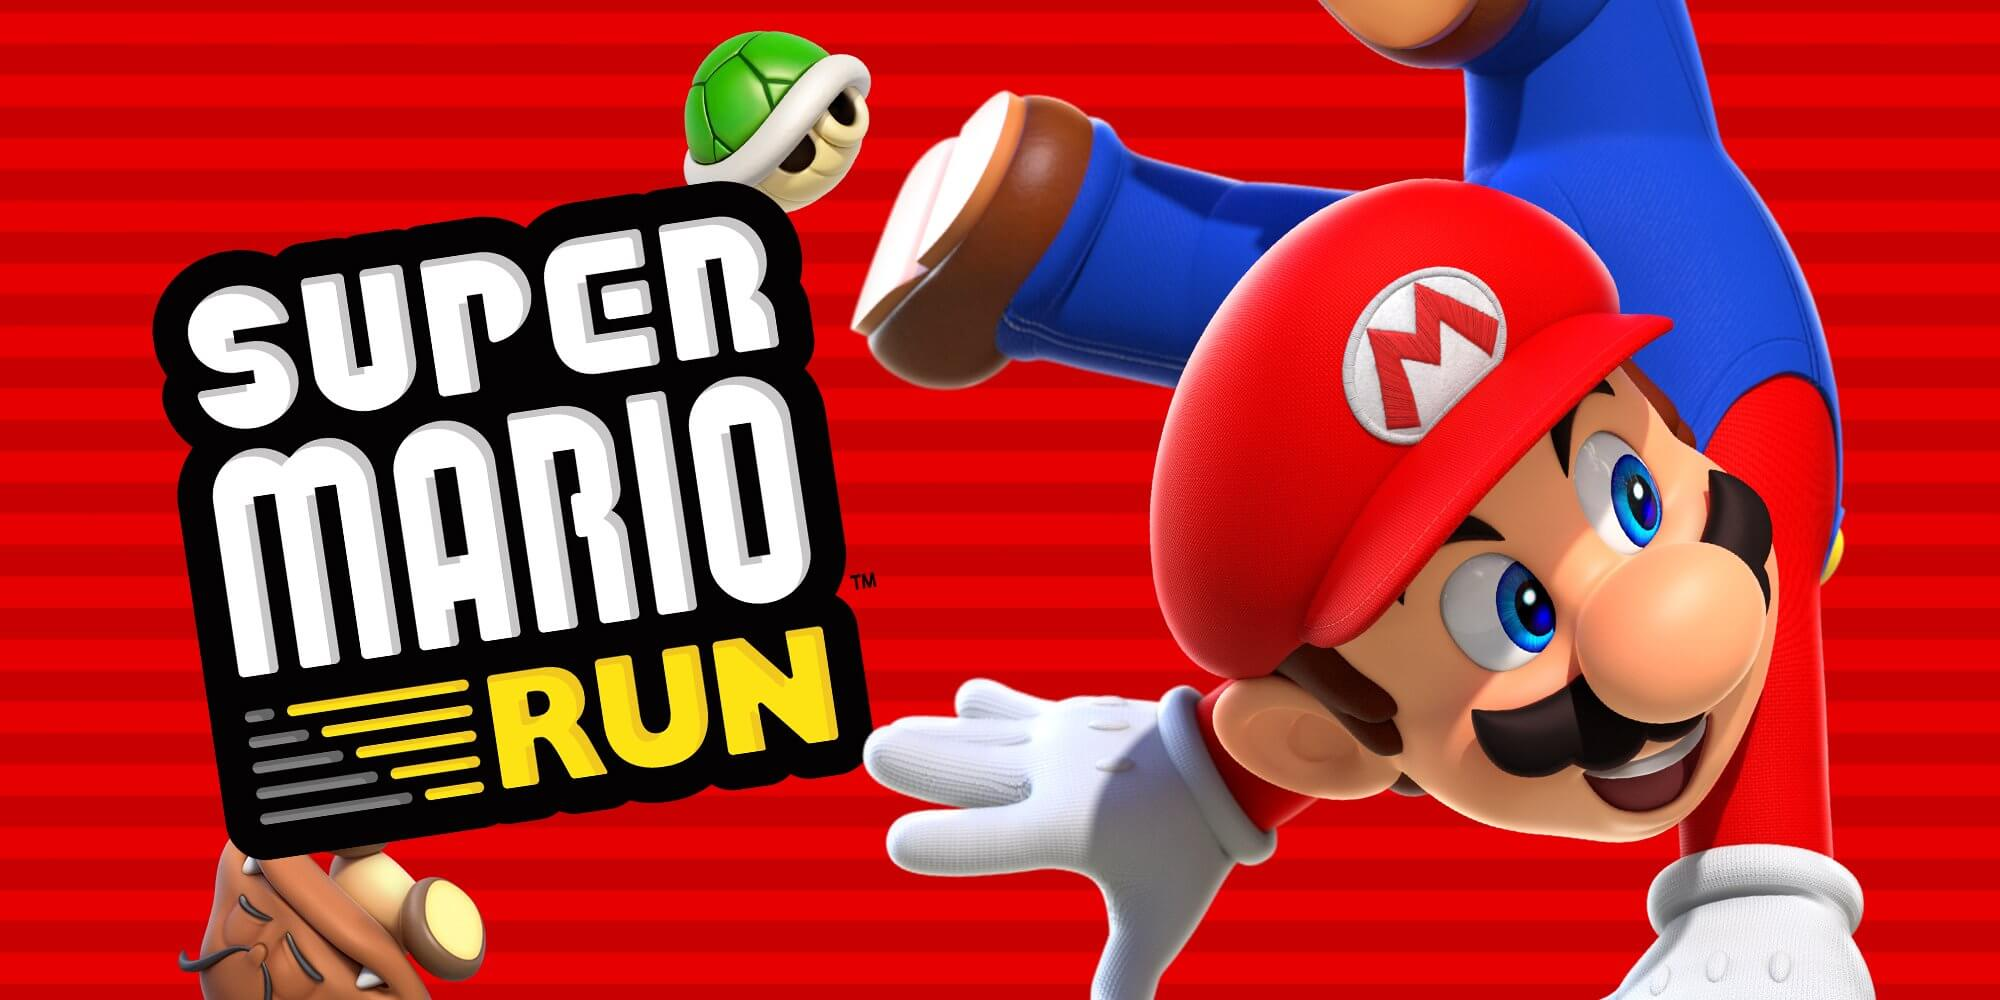 Super Mario Run für iOS Releasetermin